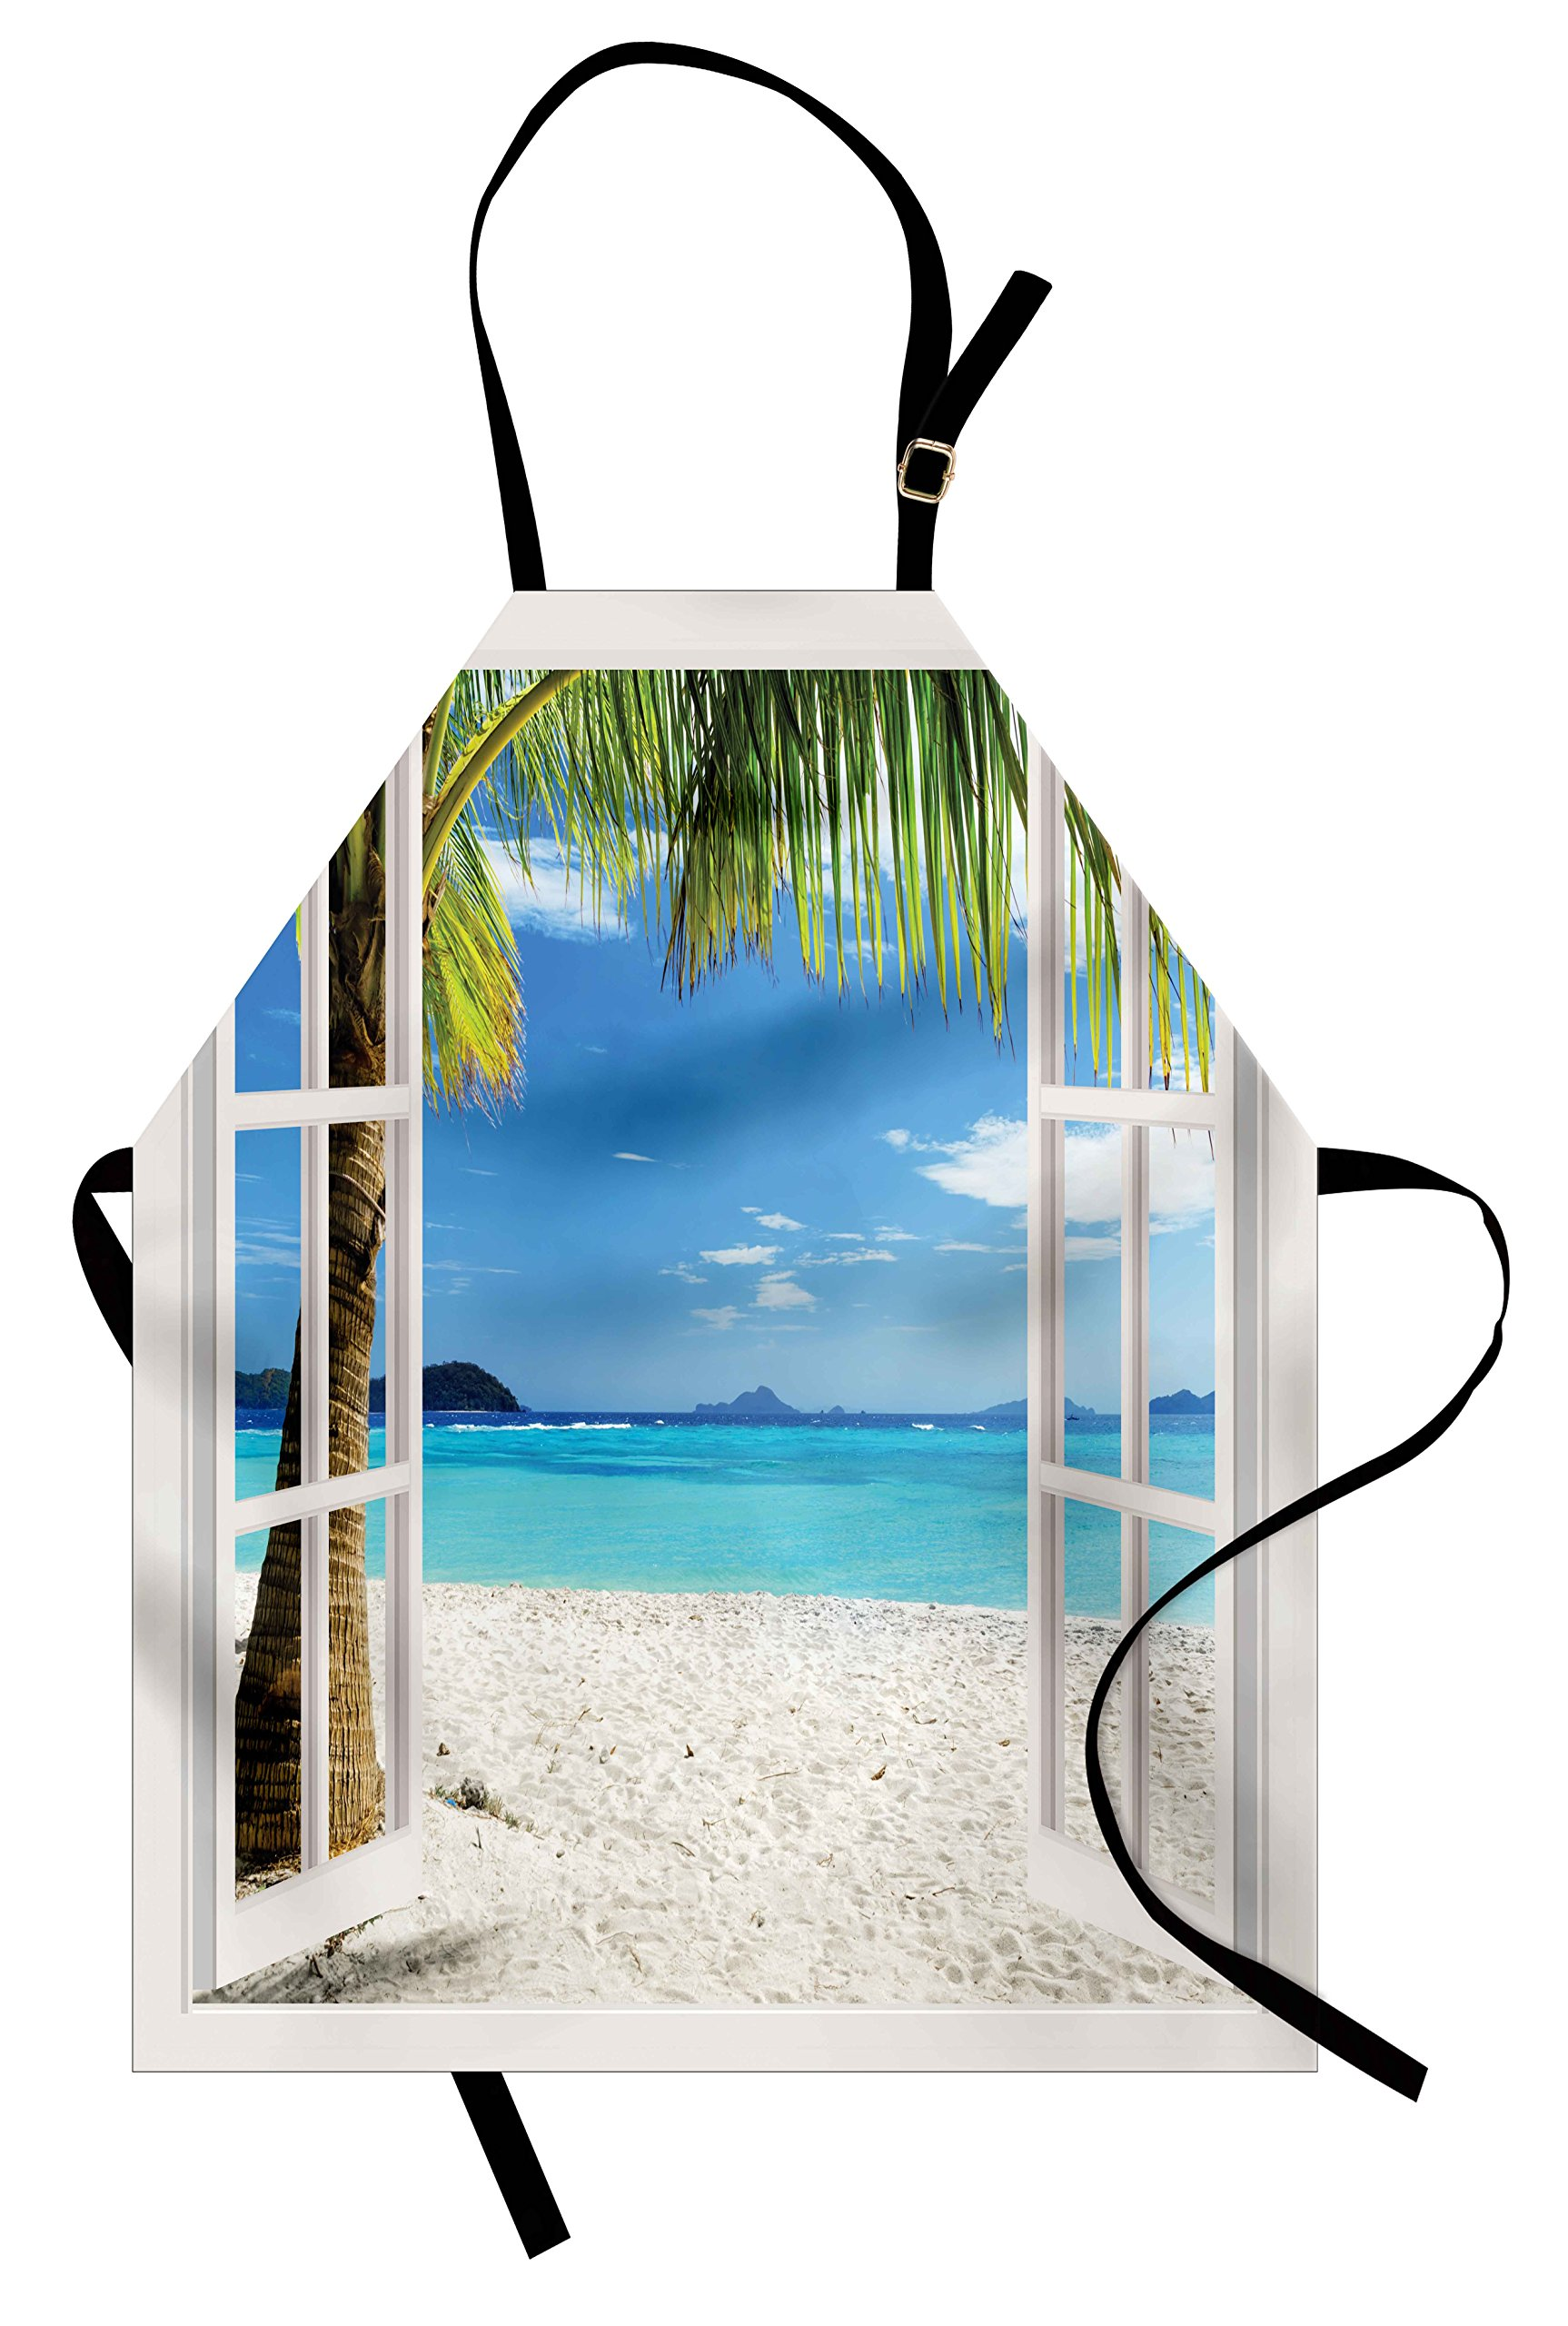 Ambesonne Turquoise Apron, Tropical Palm Trees on Island Ocean Beach Through White Wooden Windows, Unisex Kitchen Bib Apron with Adjustable Neck for Cooking Baking Gardening, Blue Green and White